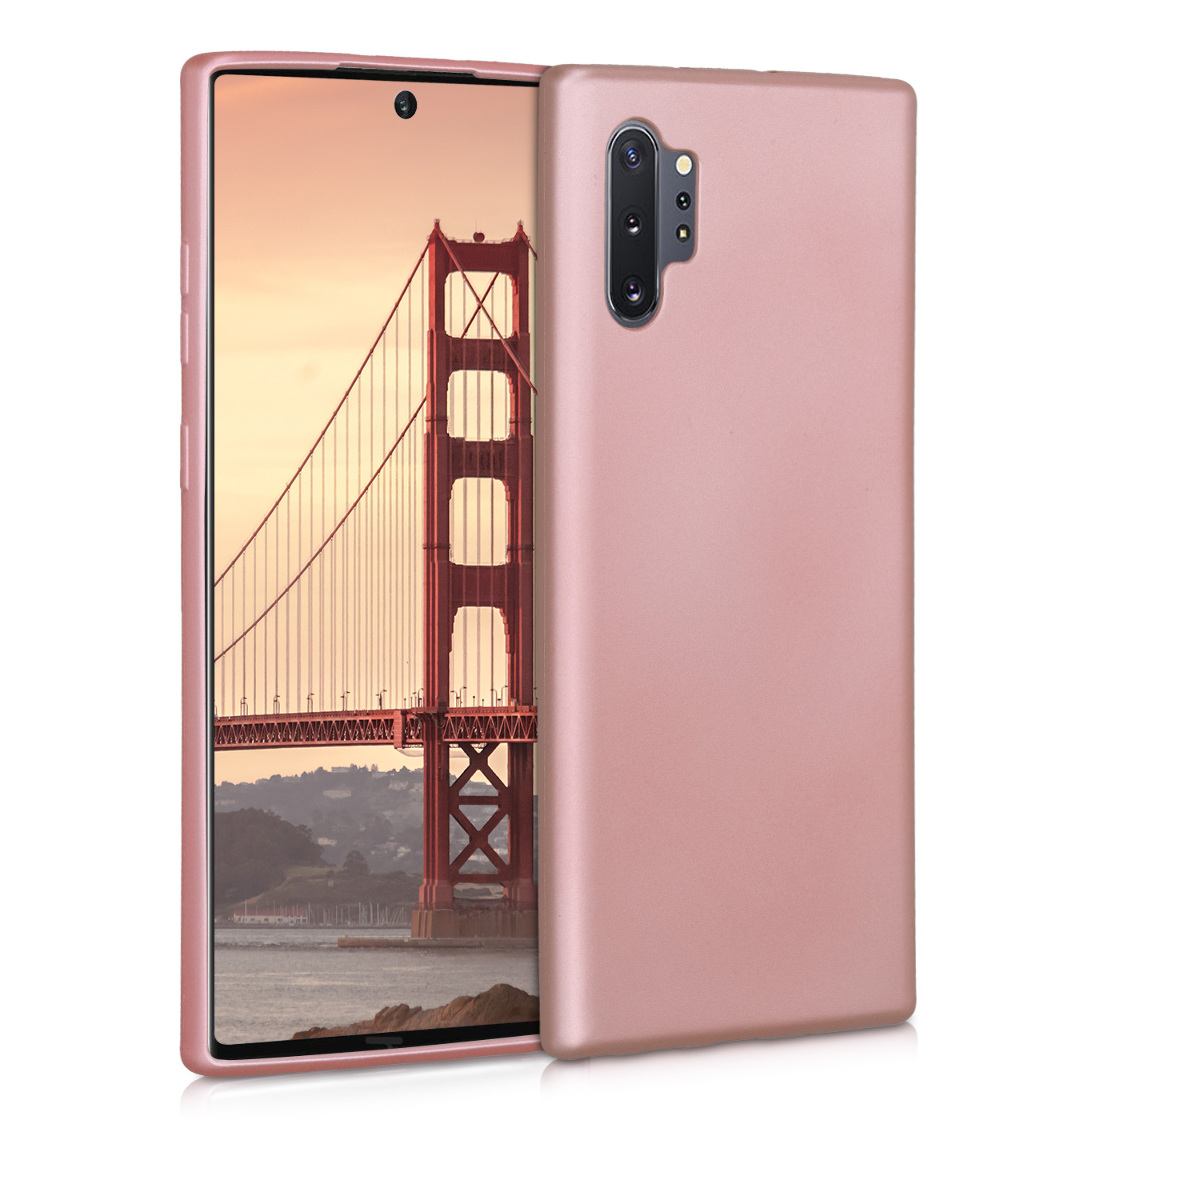 KW Θήκη Σιλικόνης Samsung Galaxy Note 10 Plus - Metallic Rose Gold (50038.31)